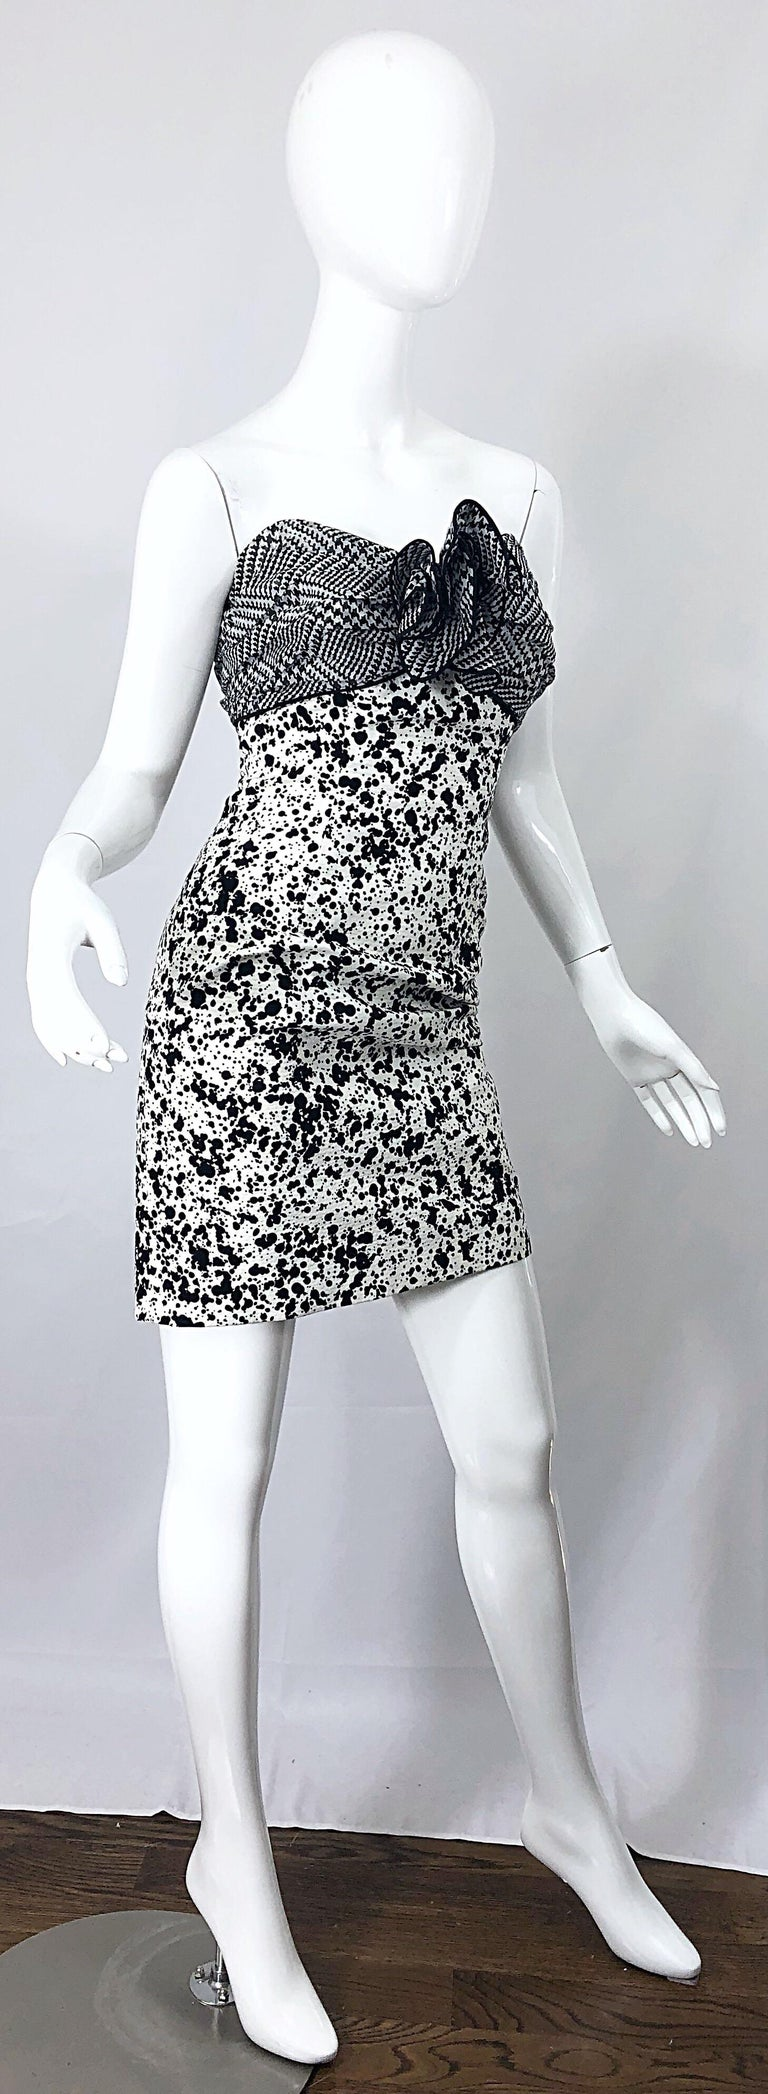 1990s Patricia Rhodes I Magnin Size 6 Black and White Vintage Strapless Dress For Sale 1